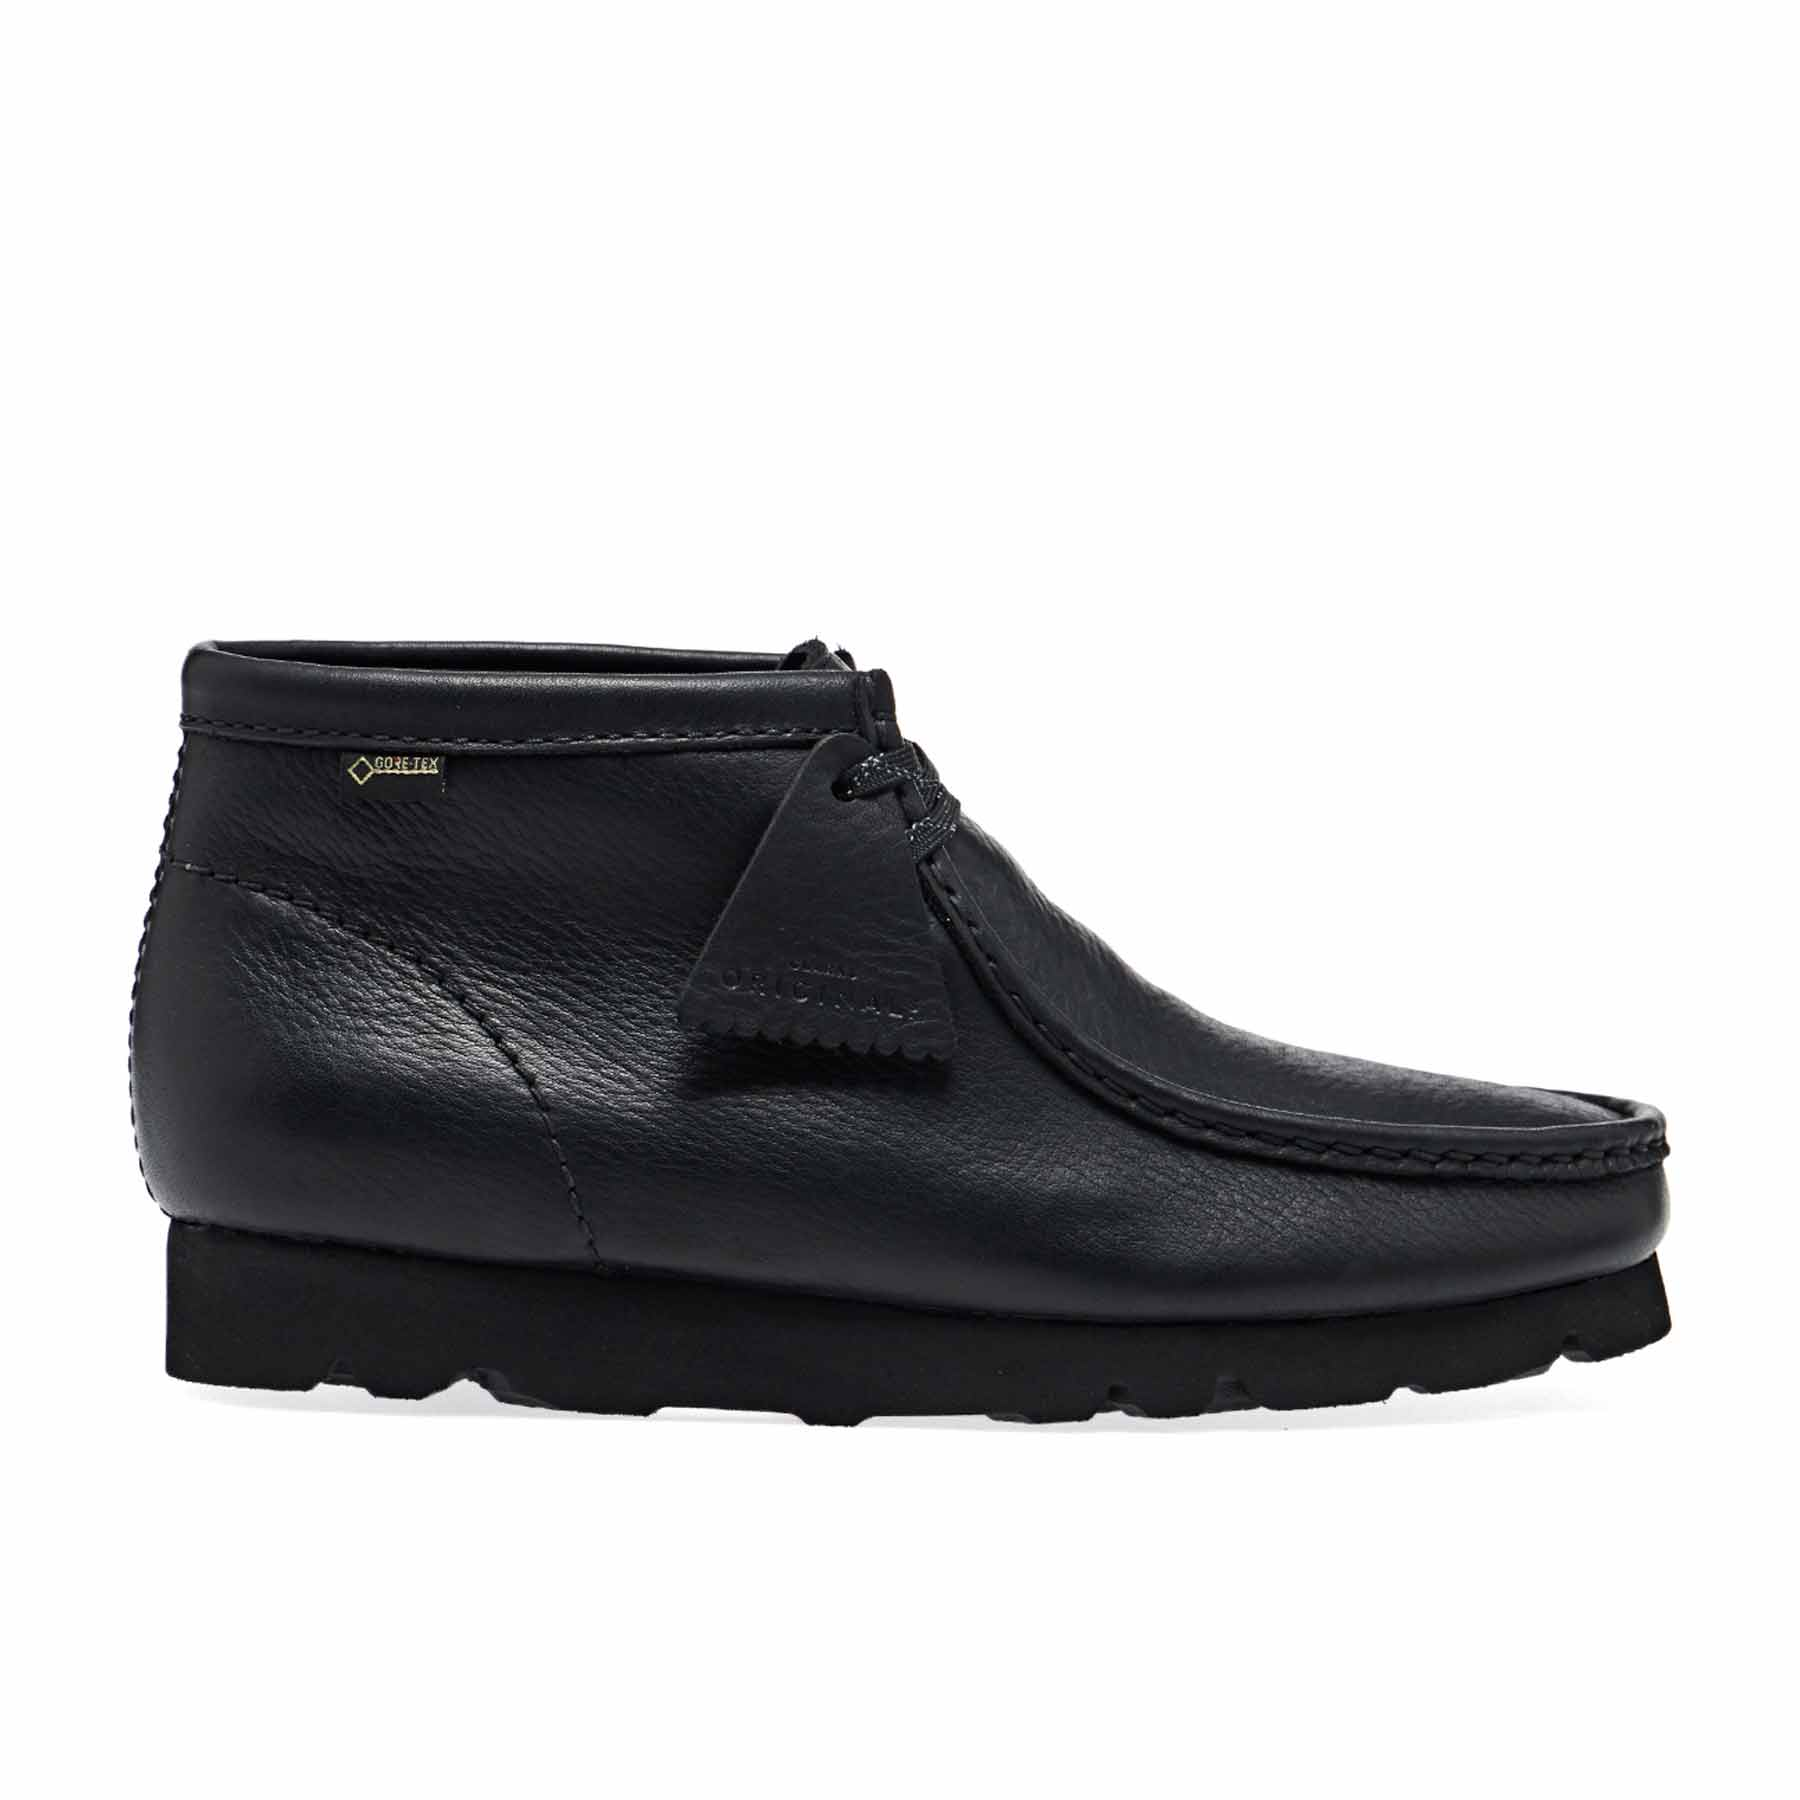 wallabee clarks black leather